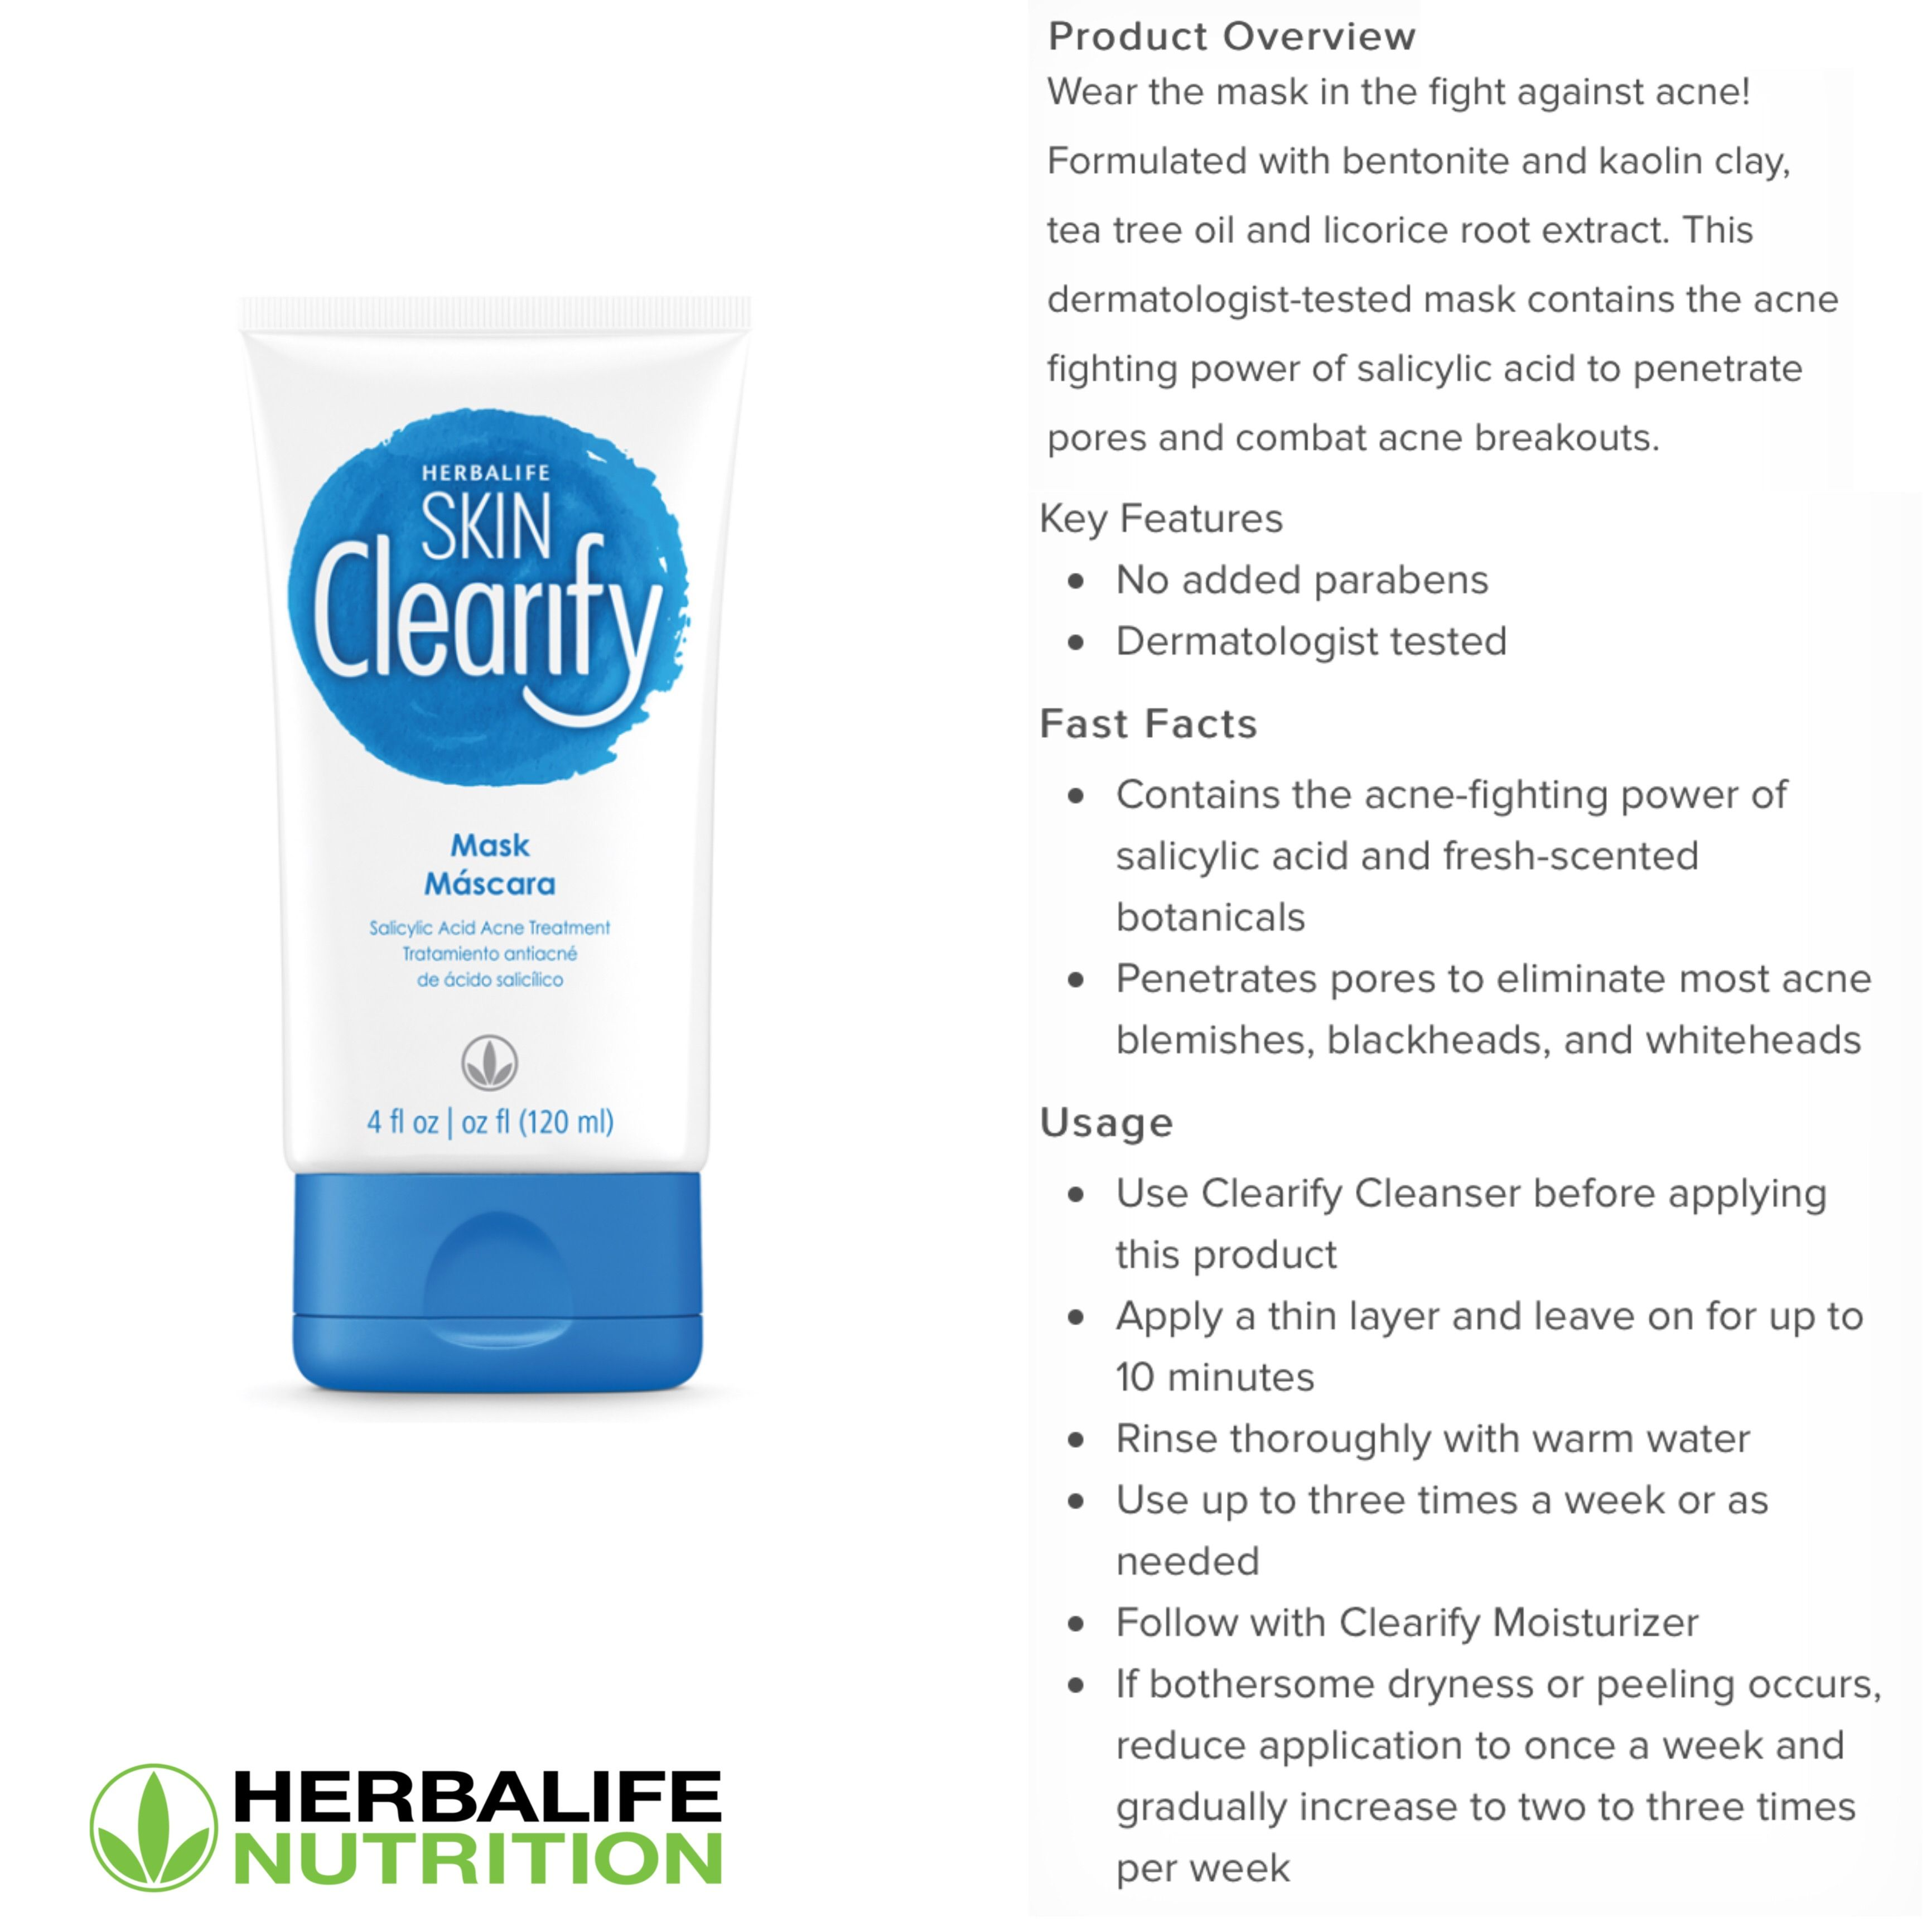 Pin By Tracy Pinkston On Herbalife Herbalife Licorice Root Licorice Root Extract